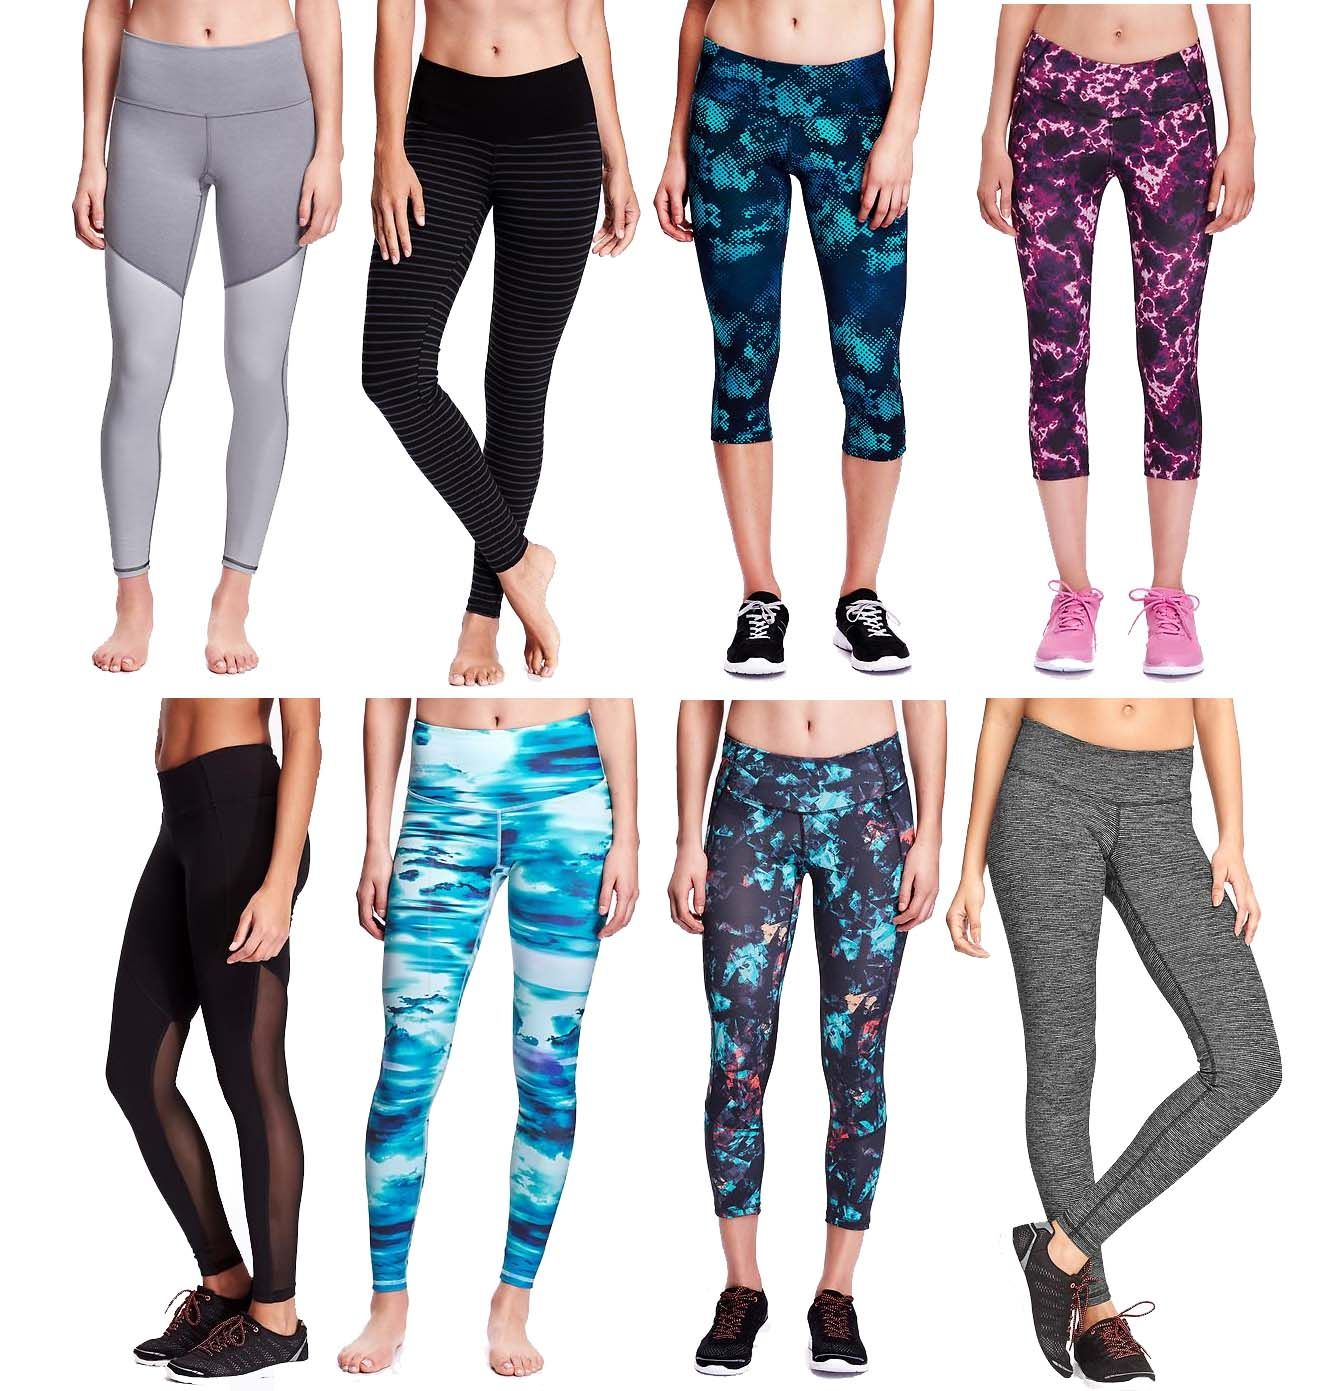 eb9f4e8da0 Old Navy Active: Look at all of these cute leggings!! Perfect for the gym  (or not...)